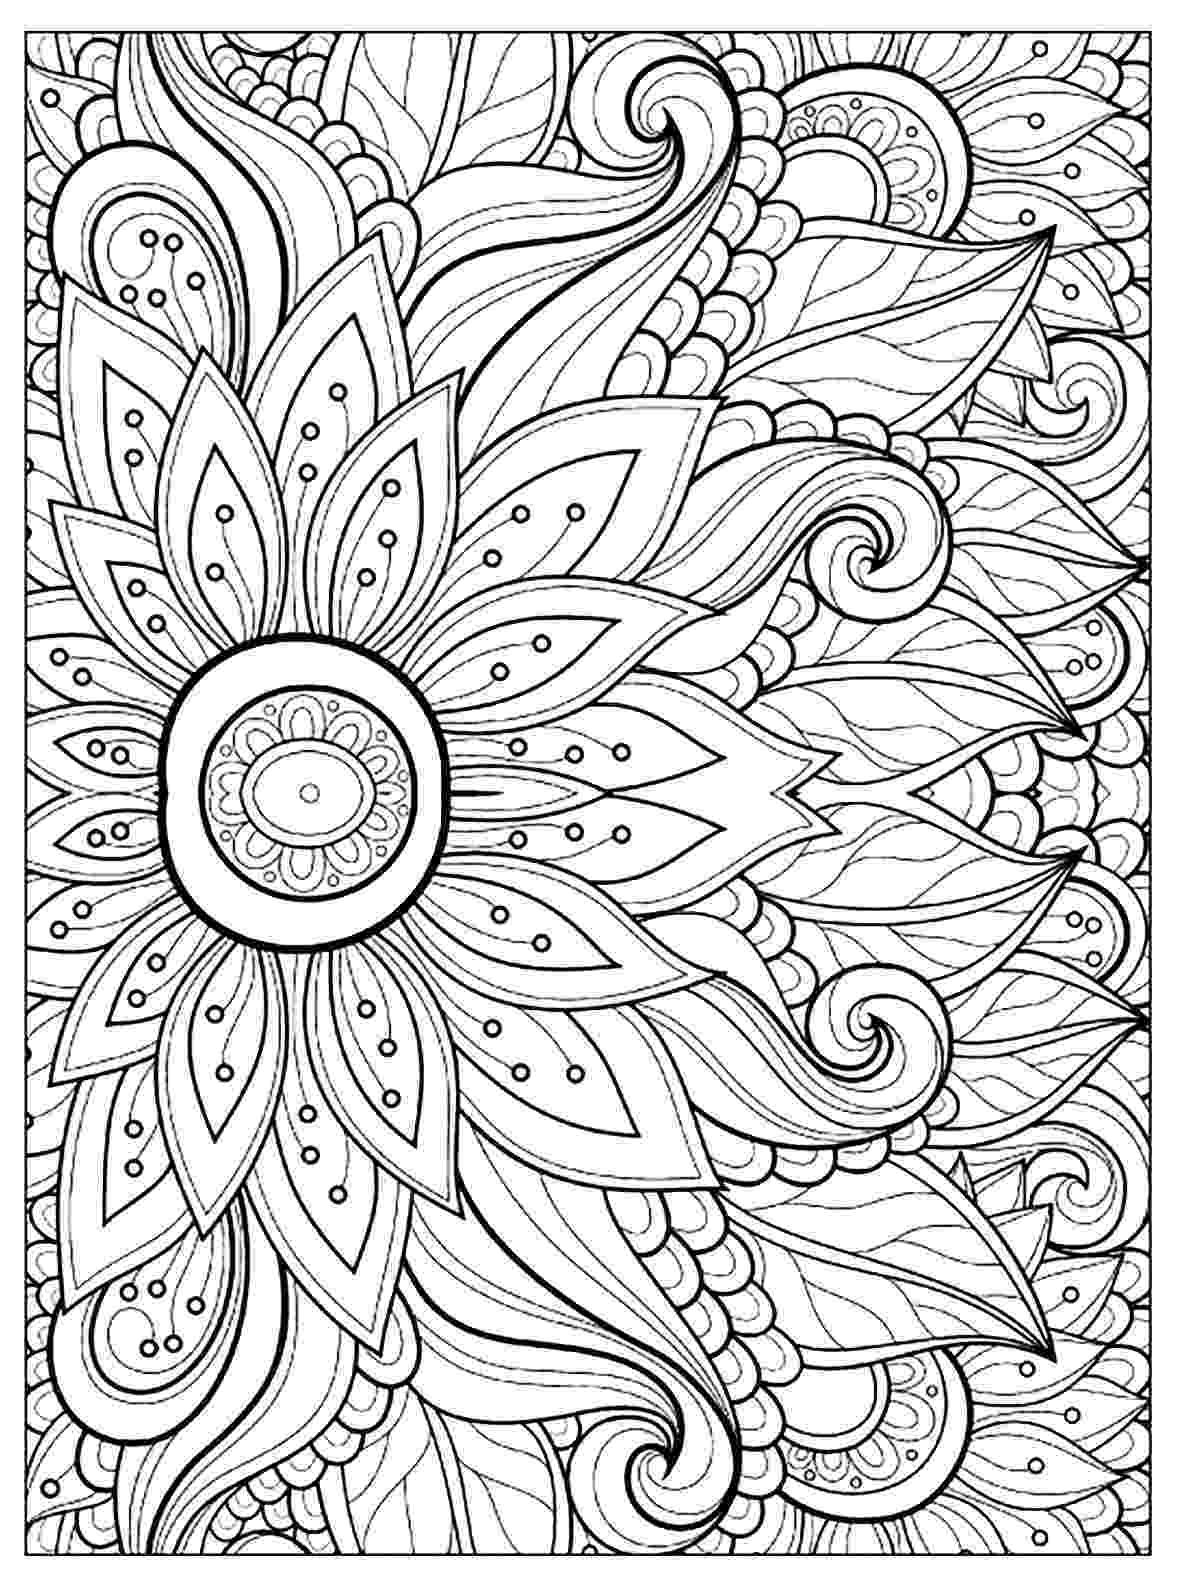 pictures of flowers to color free printables coloring pages flower coloring pages color flowers color to flowers printables pictures free of